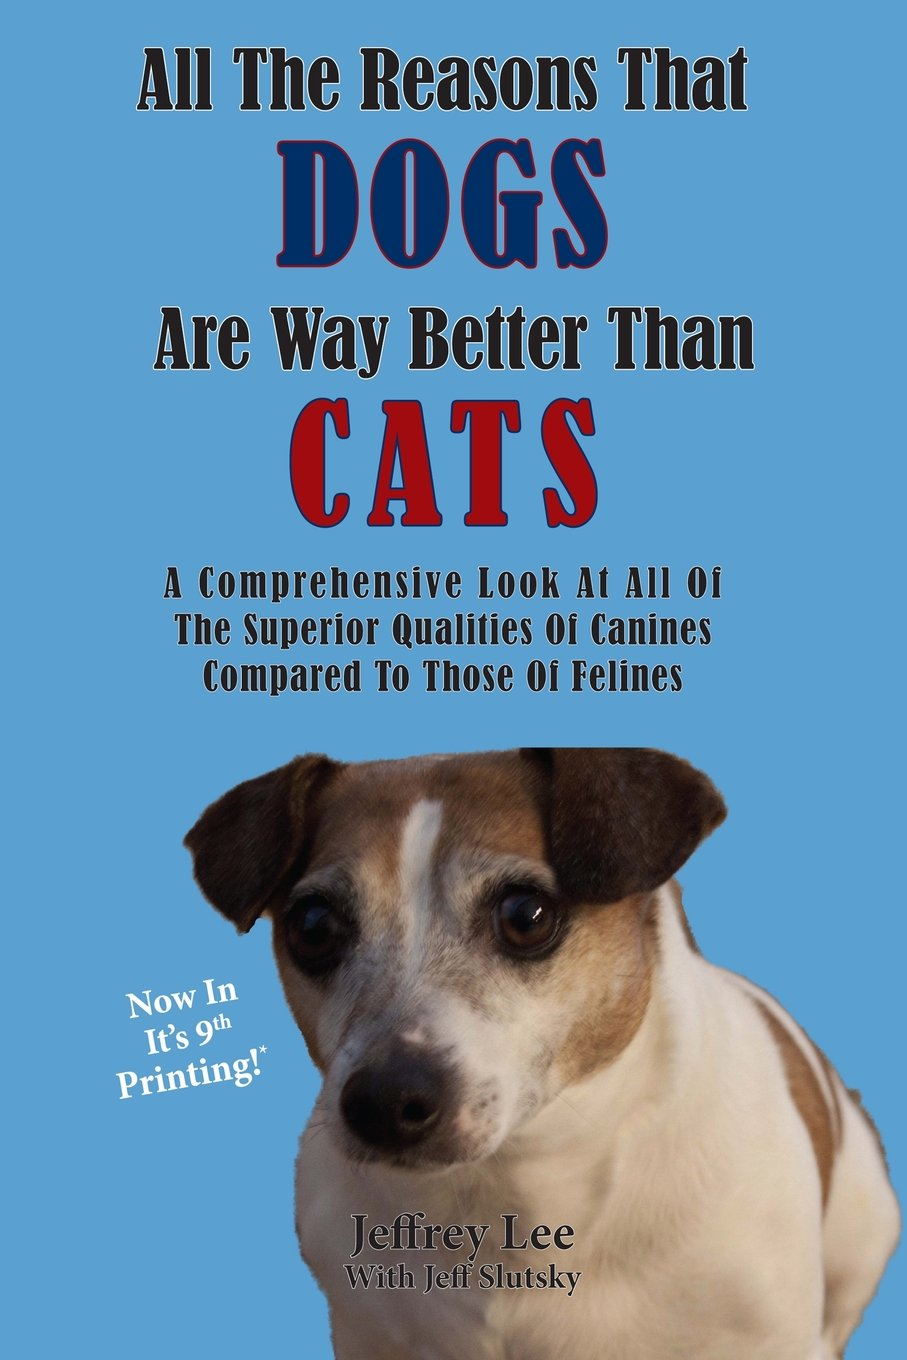 Download All The Reasons That Dogs Are Way Better Than Cats: A Comprehensive Look At All Of The Superior Qualities Of Canines  Compared To Those Of Felines pdf